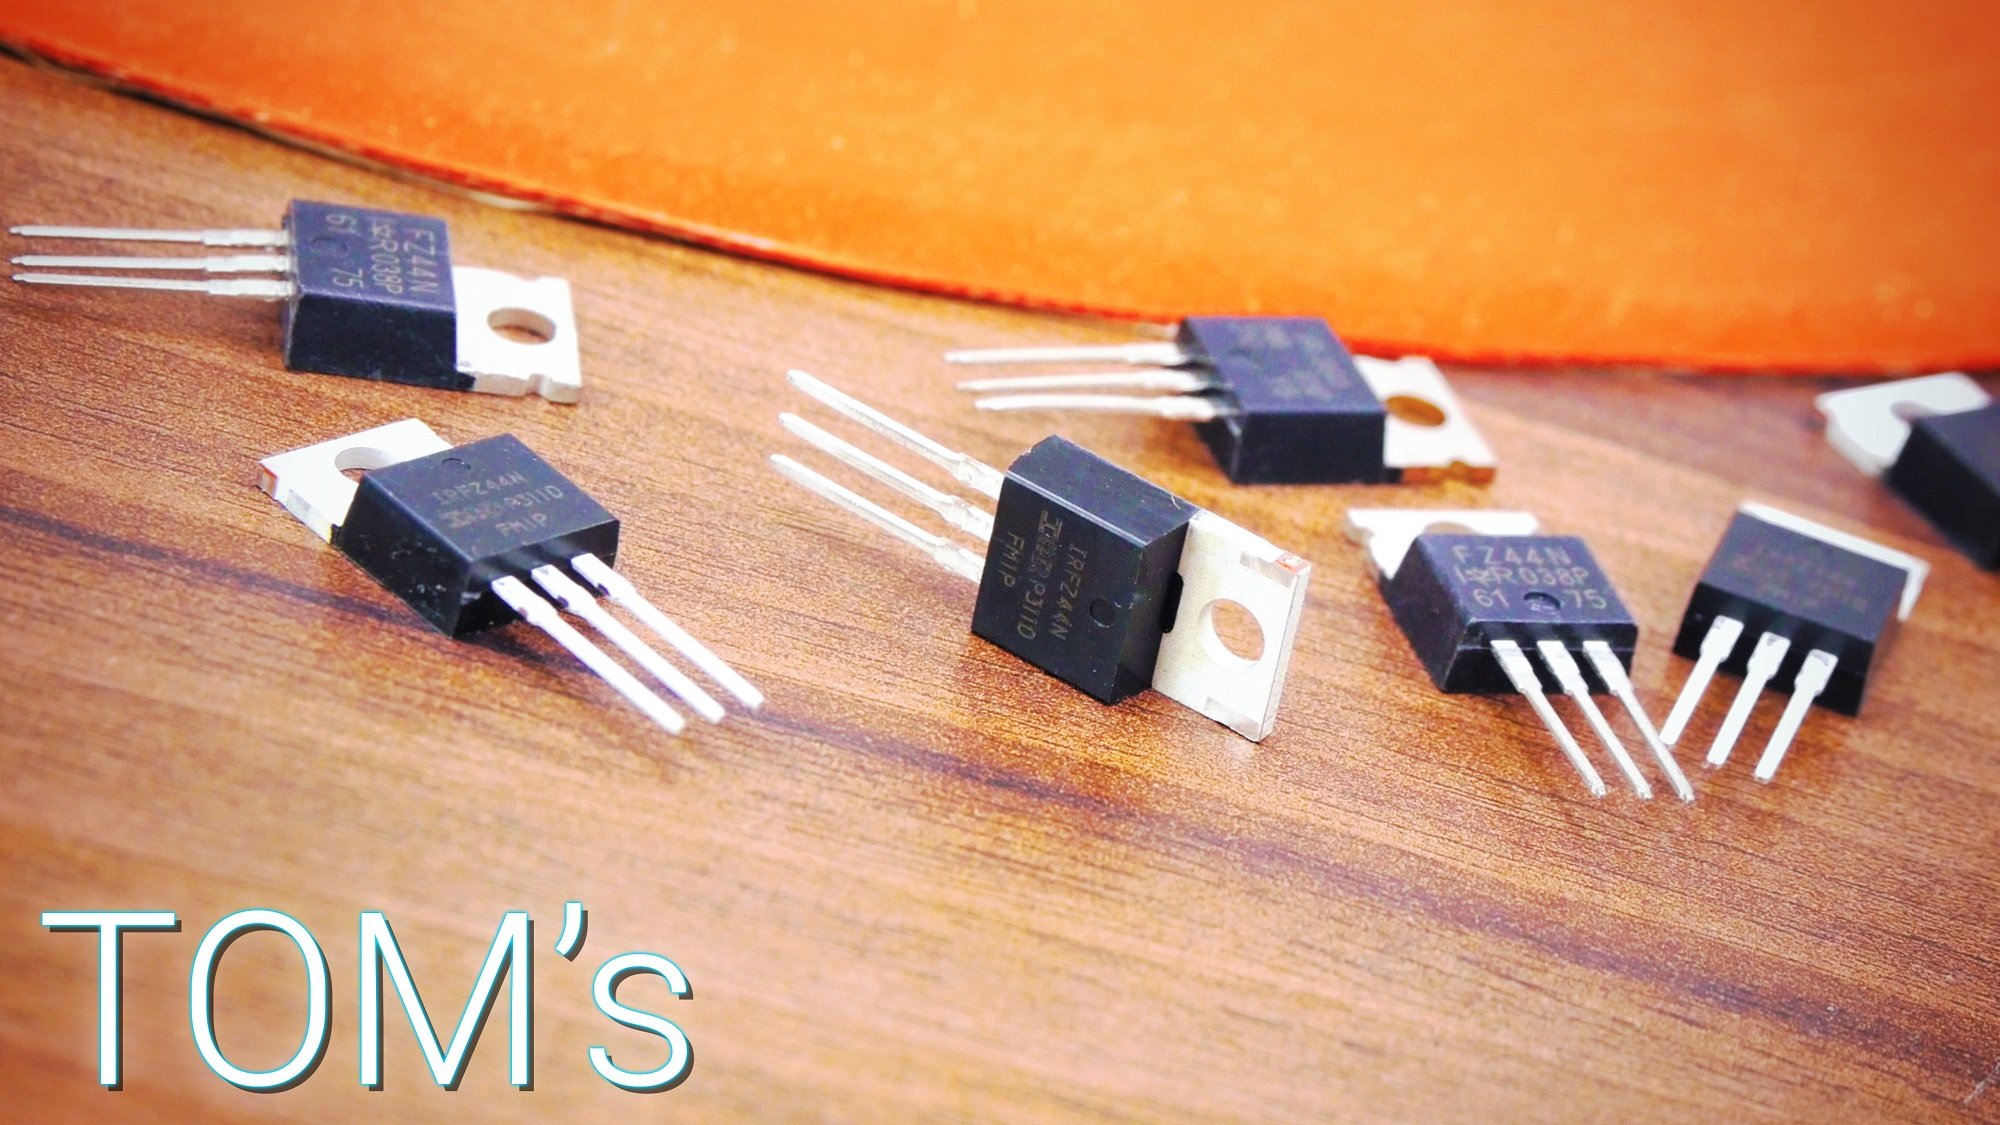 guide properly picking and using mosfets! tom's 3d printing usb wire color diagram guide properly picking and using mosfets! tom's 3d printing guides and reviews